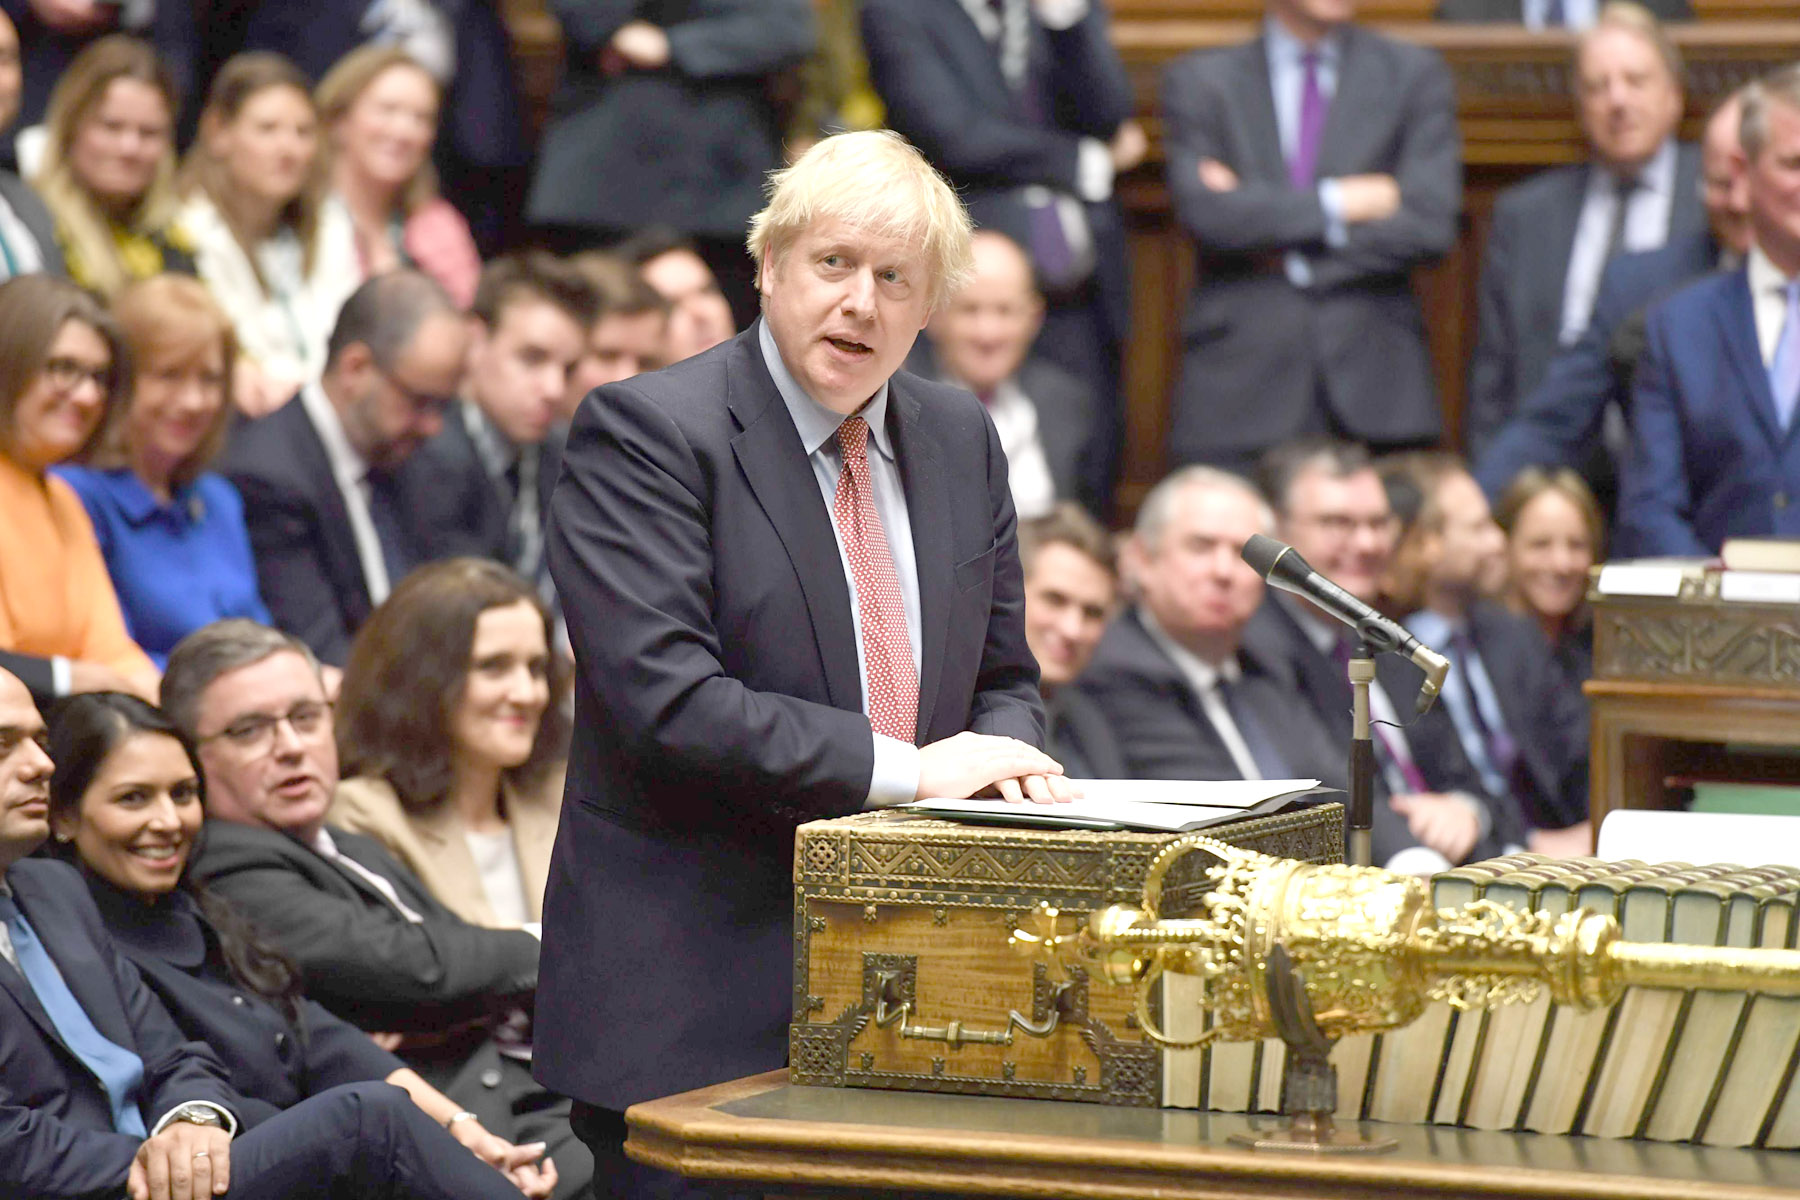 Britain's Prime Minister Boris Johnson speaking at the despatch box in the House of Commons in London, during the first sitting of Parliament since the general election, December 17. (AFP)